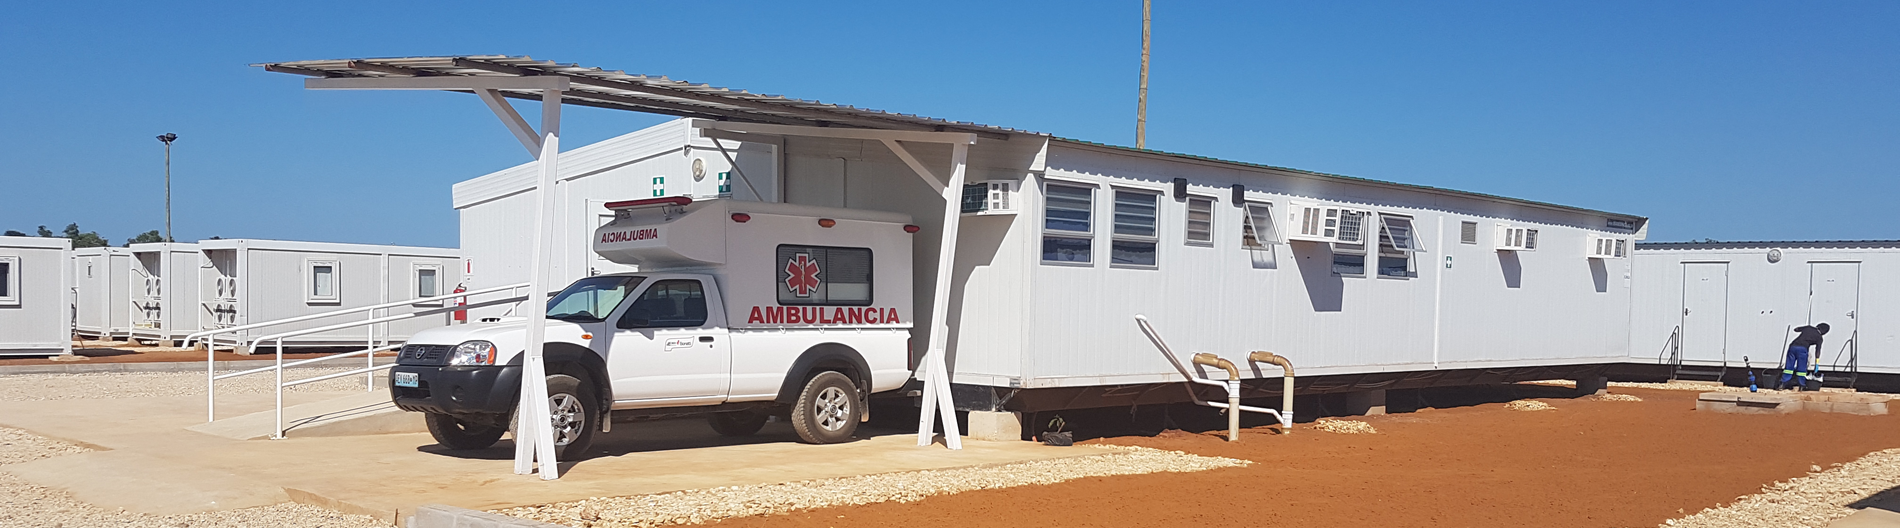 Mobile clinics deliver rapid solutions for healthcare space. Kwikspace prefab buildings are ideal for modular clinics.